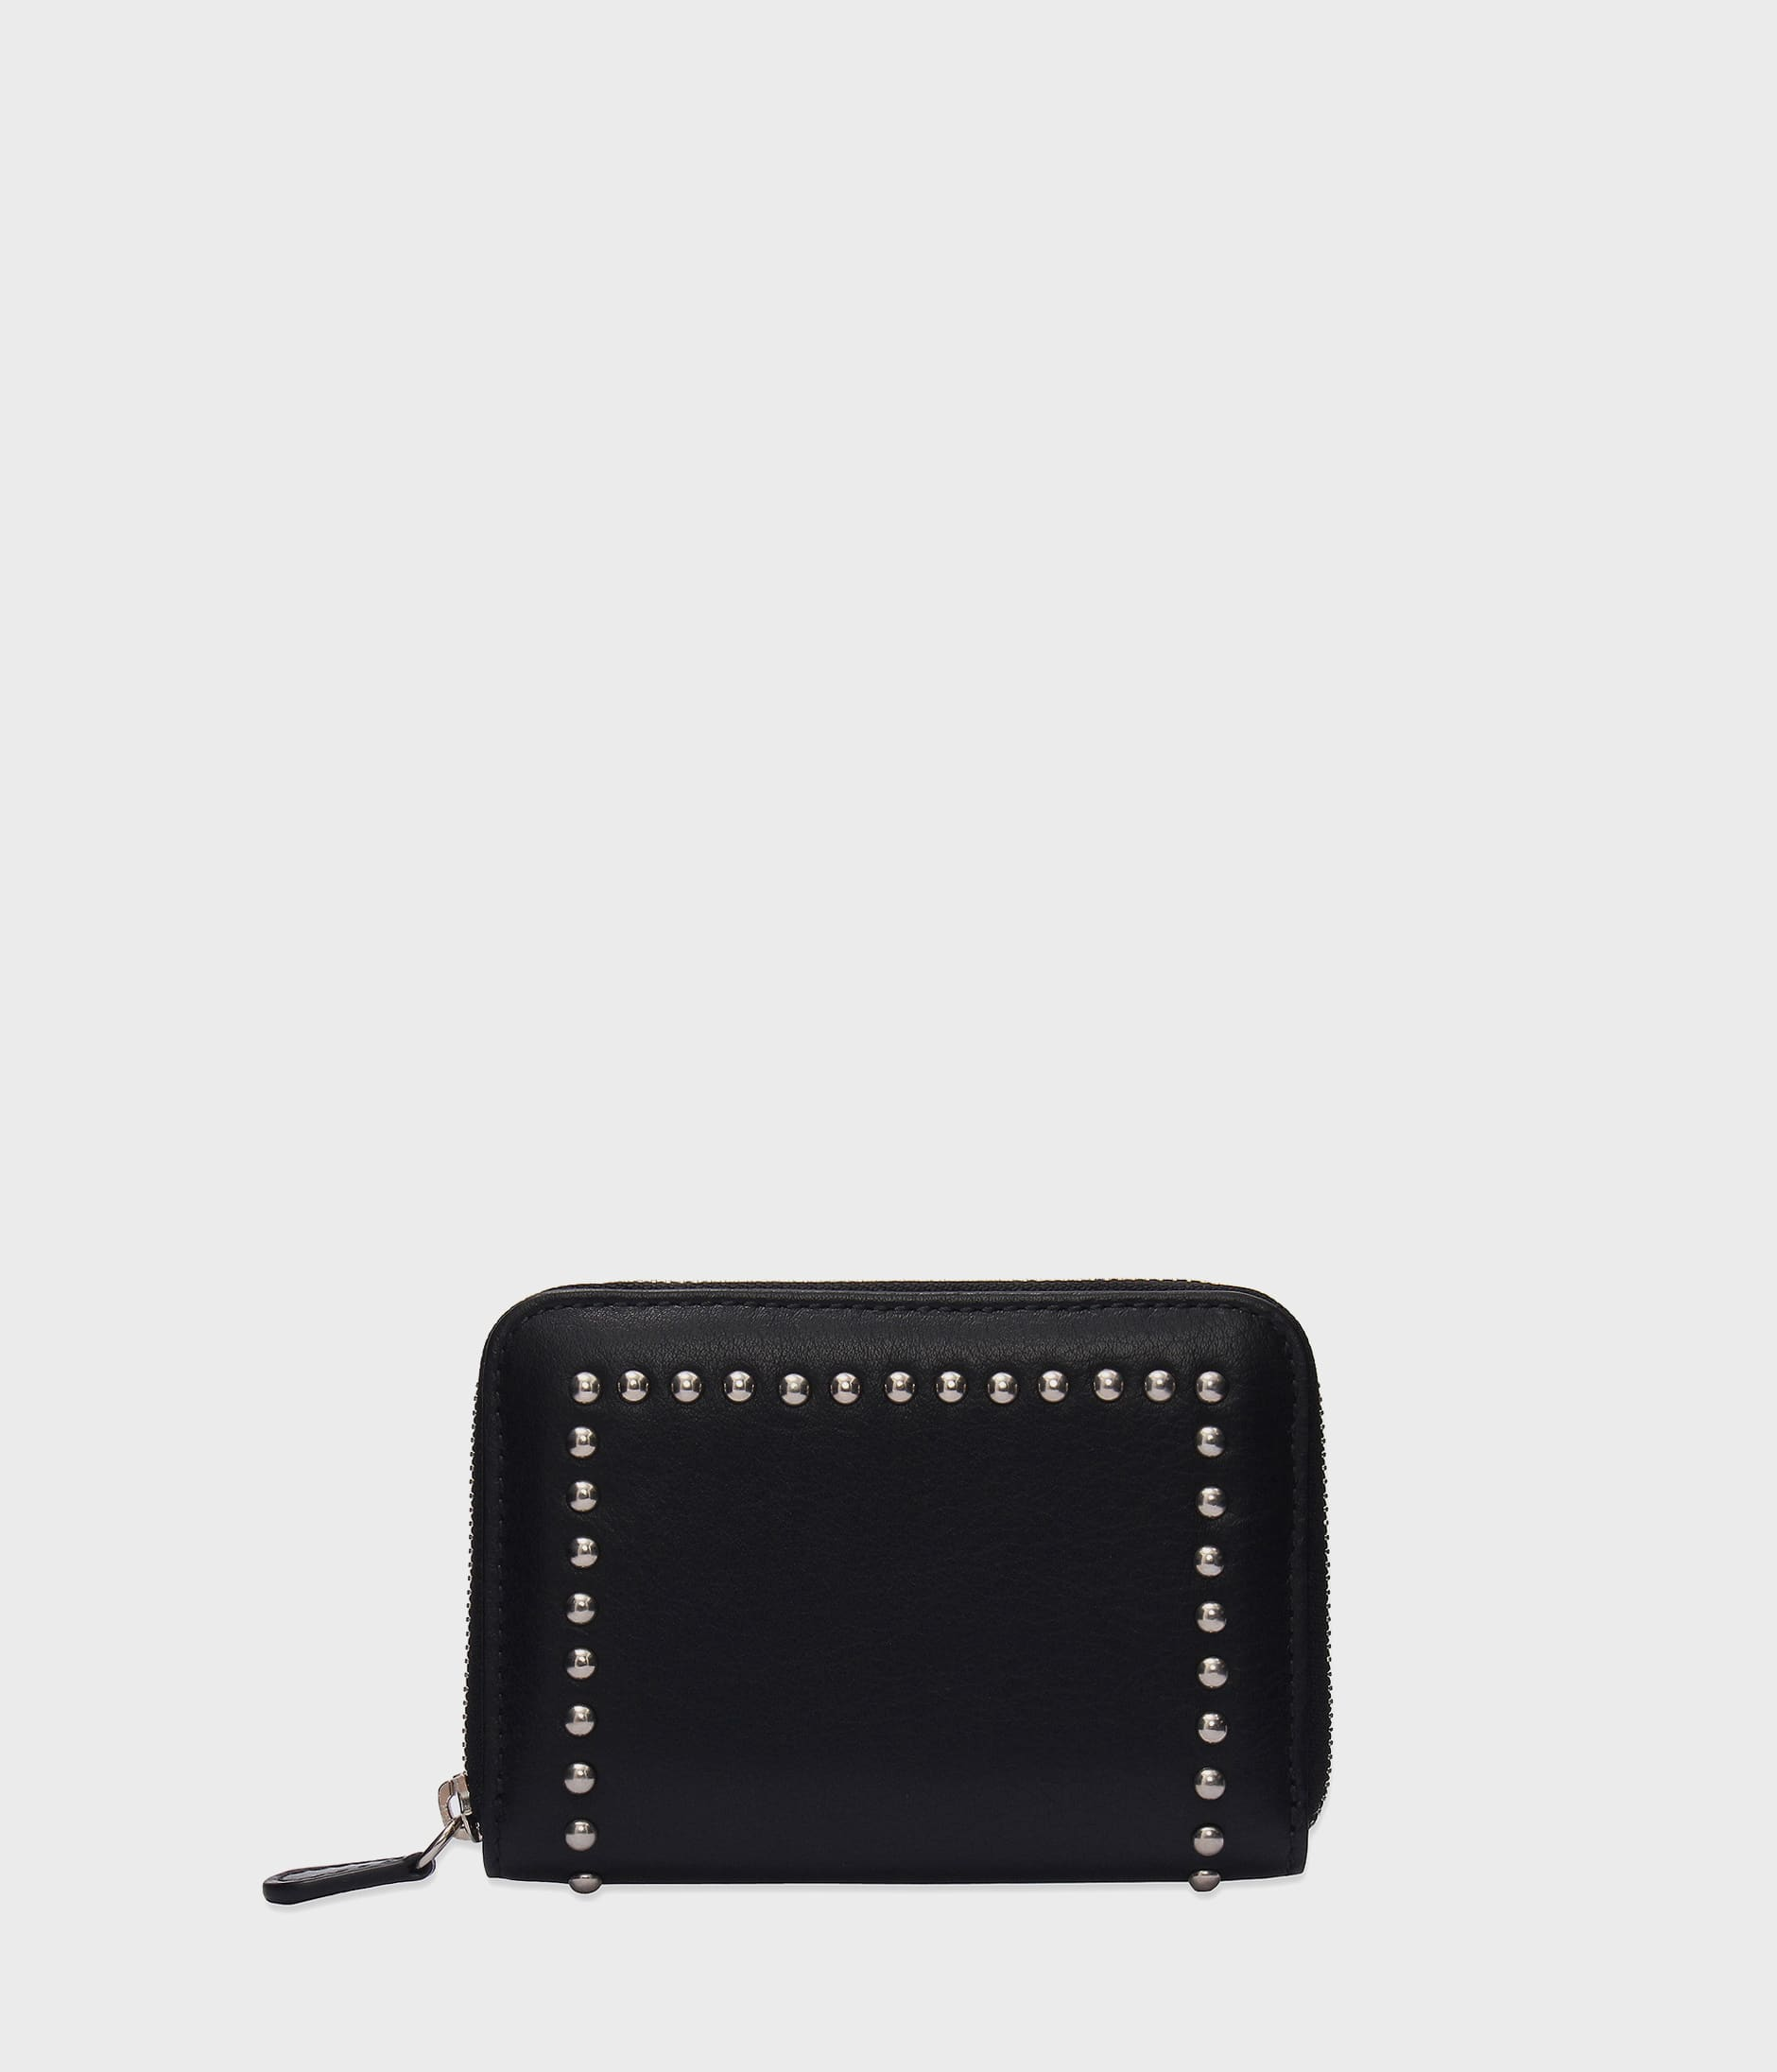 SMALL ZIP PURSE WITH STUDS 詳細画像 BLACK 1